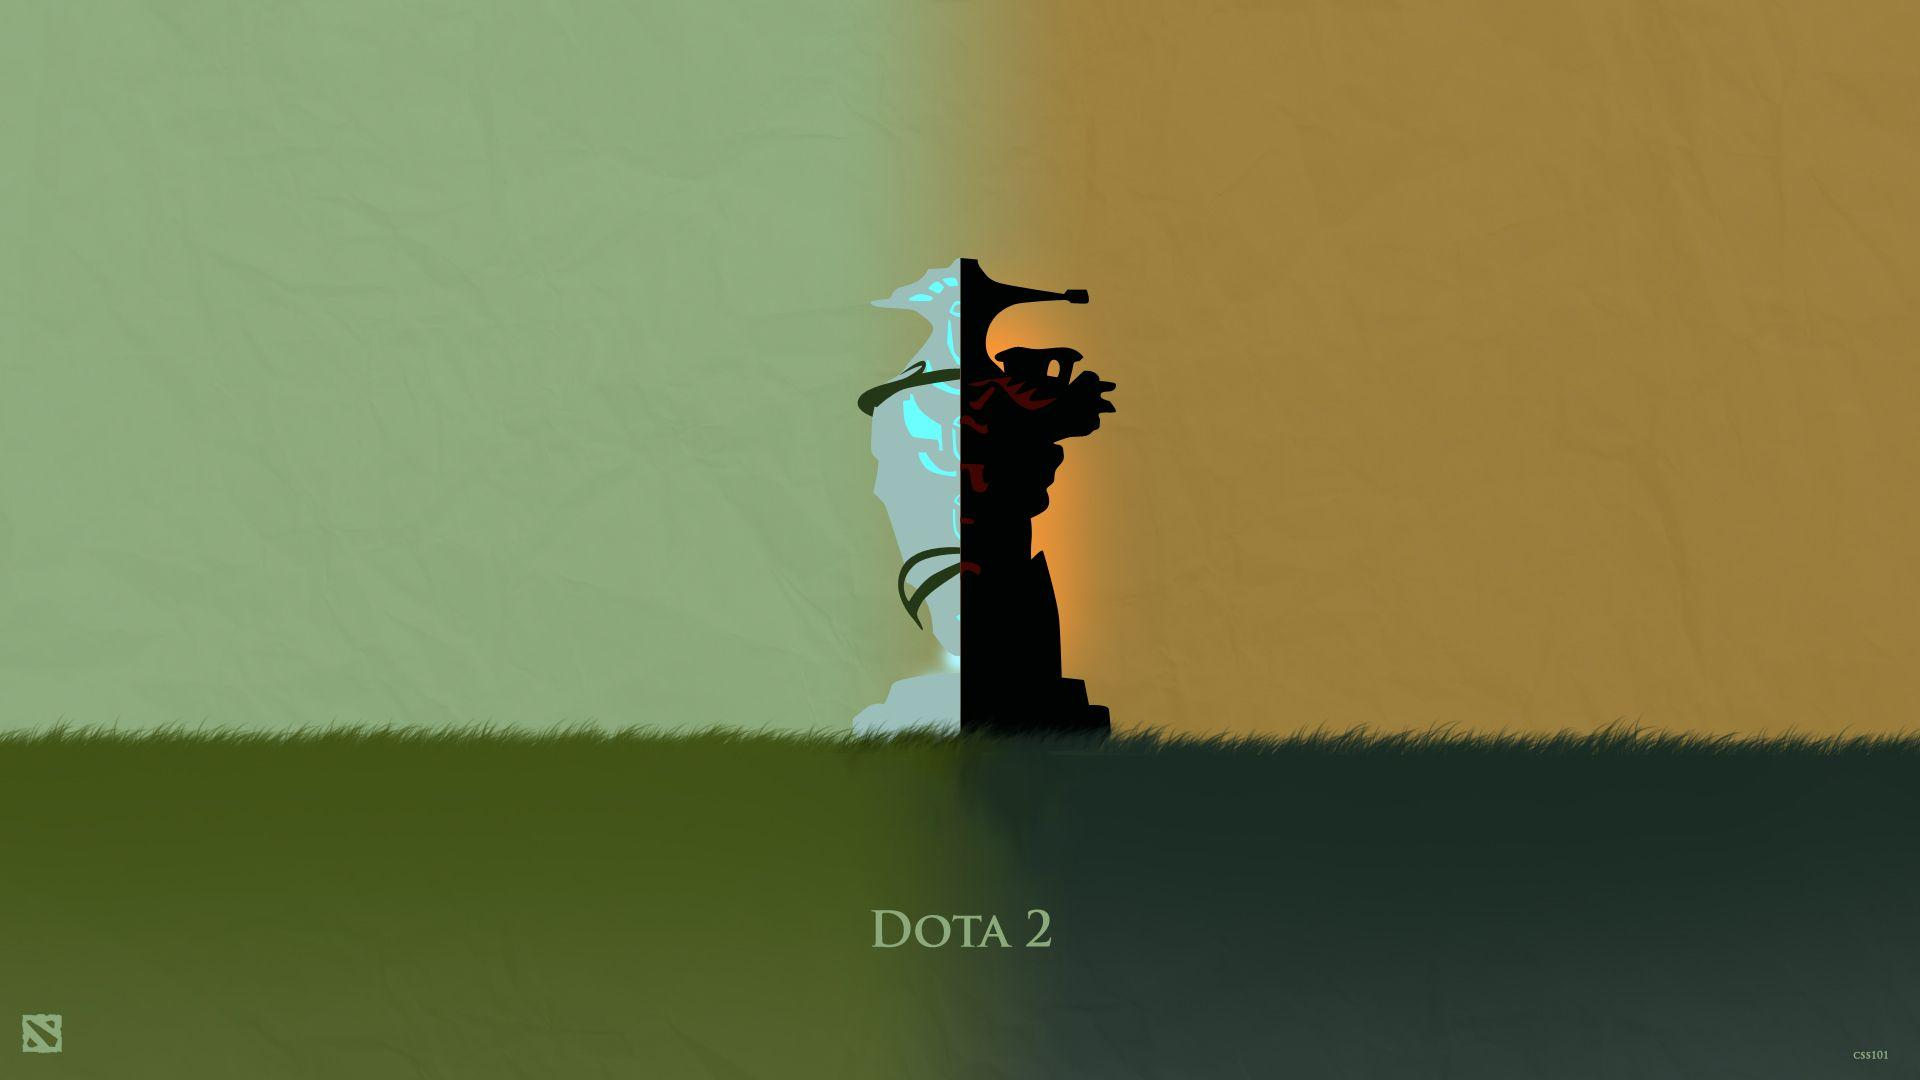 Hd wallpaper dota 2 - 50 Beautiful Dota 2 Heroes Silhouette 1920x1080 Hd Wallpapers